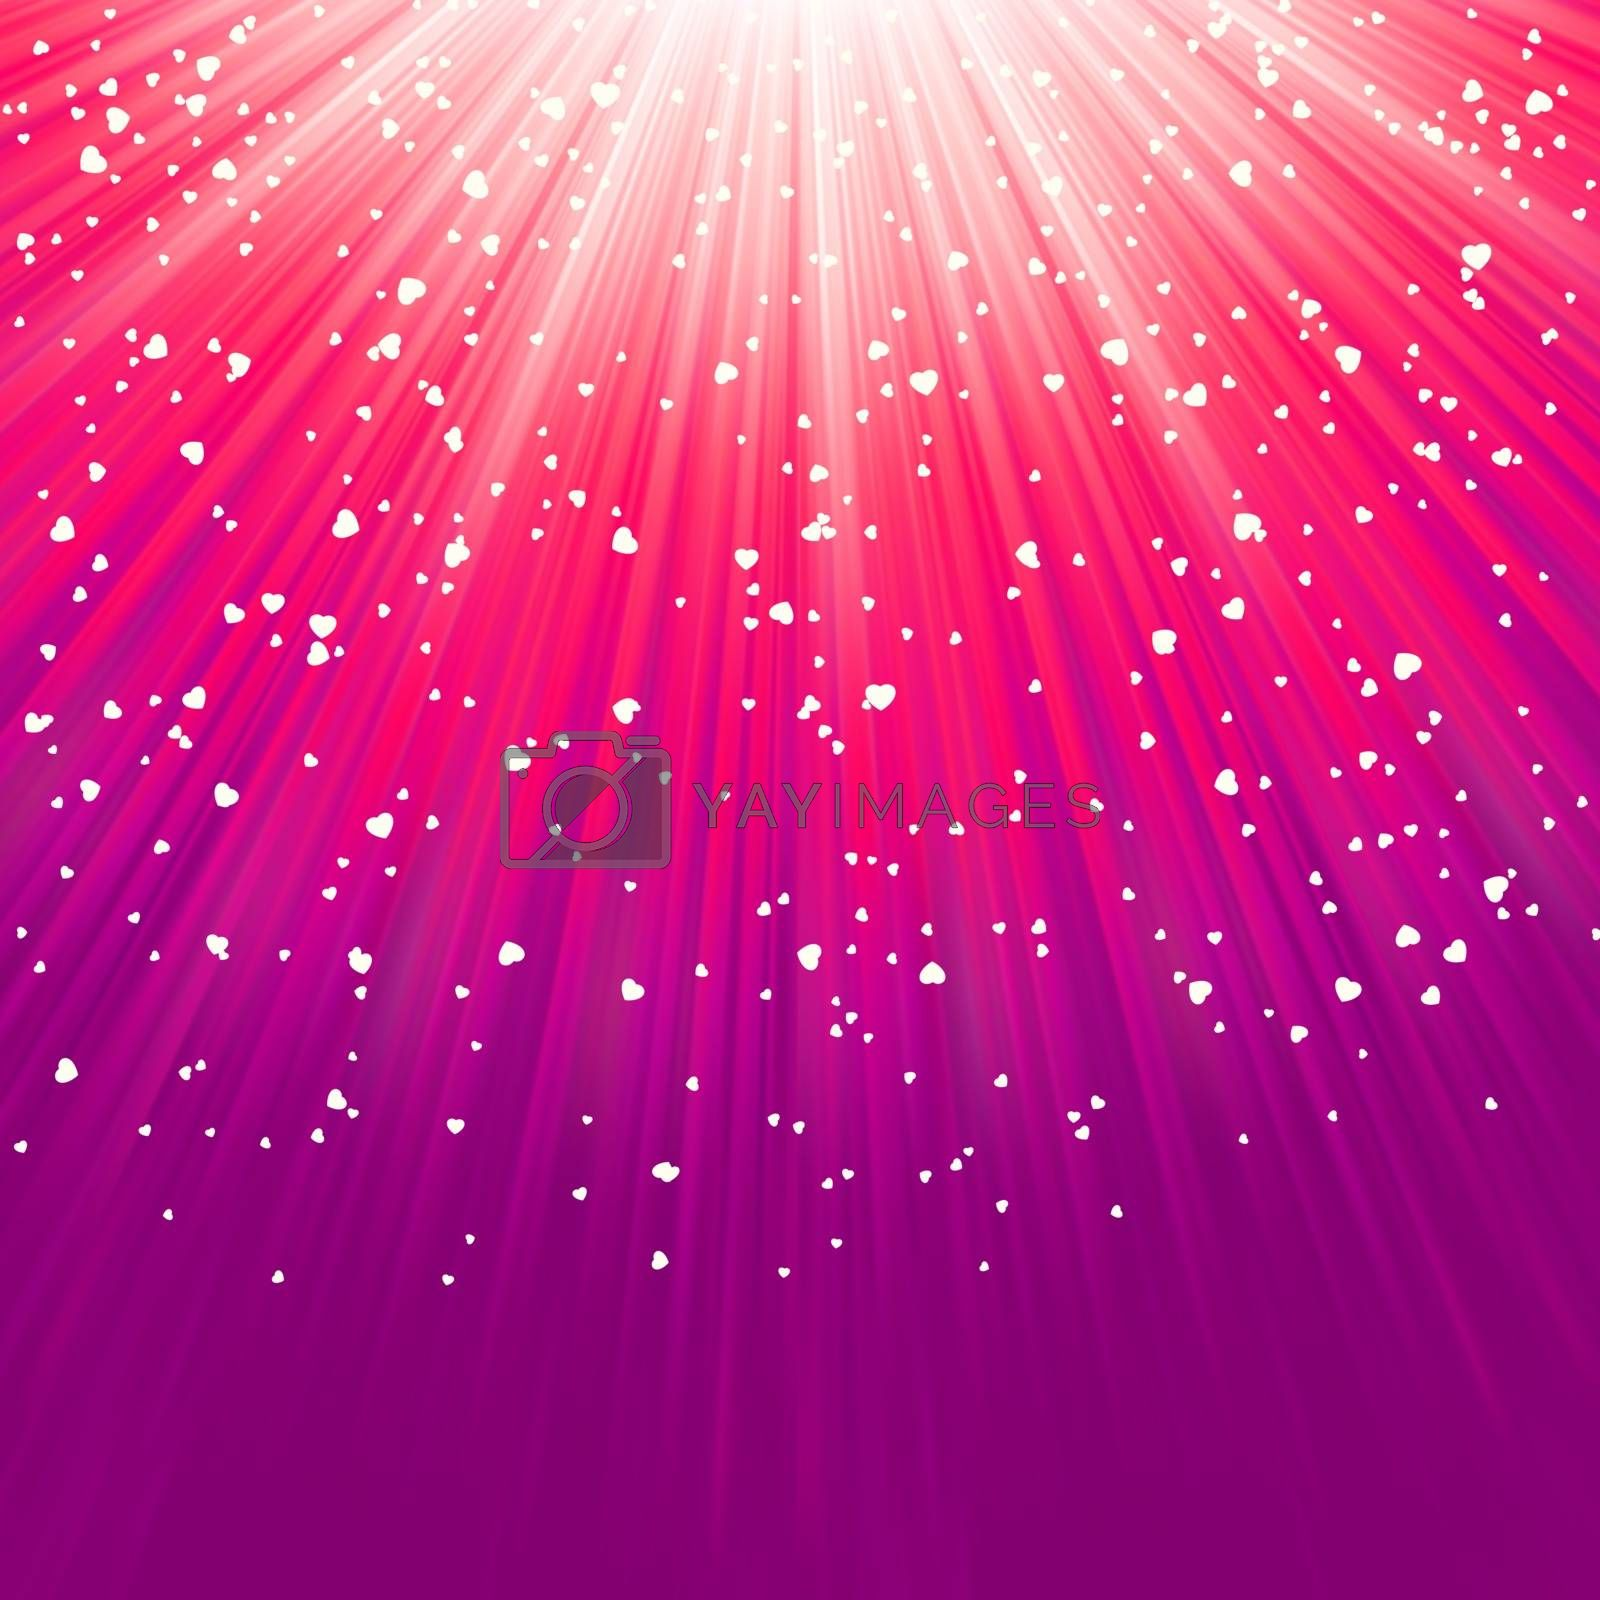 Love bright theme with hearts and stars. EPS 8 vector file included